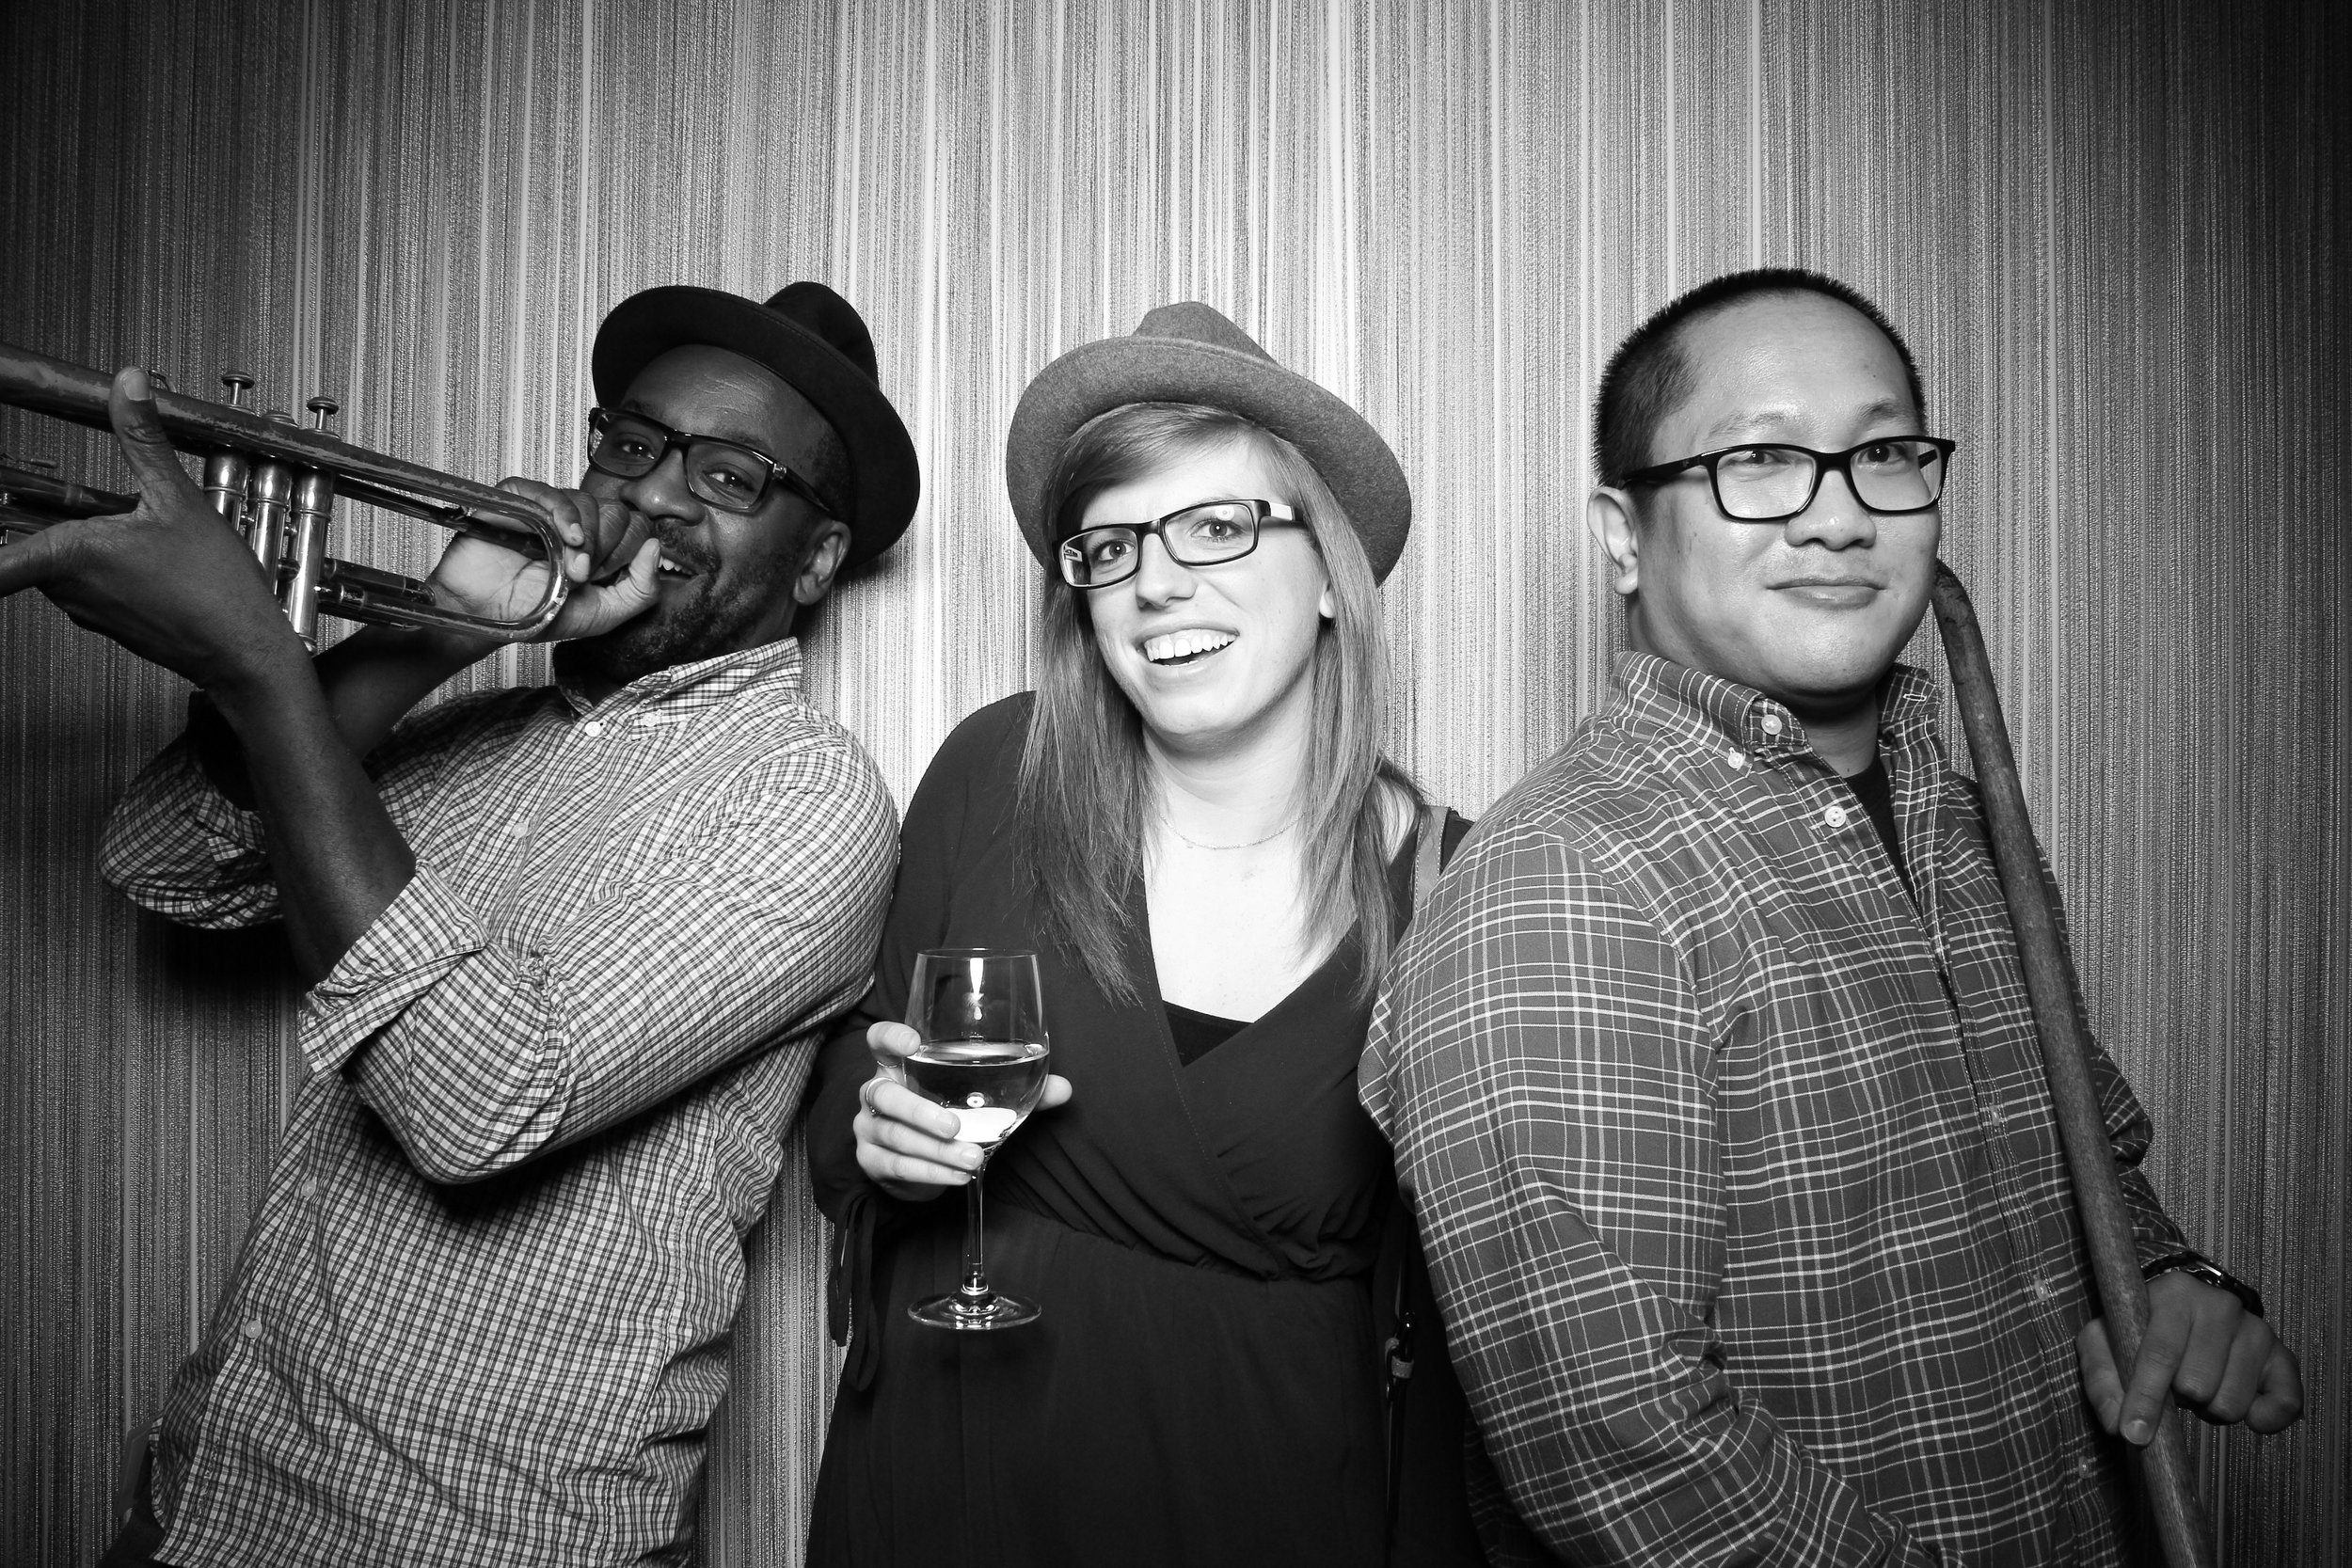 Chicago_Vintage_Photobooth_Holiday_Party_Wit_Hotel_03.jpg